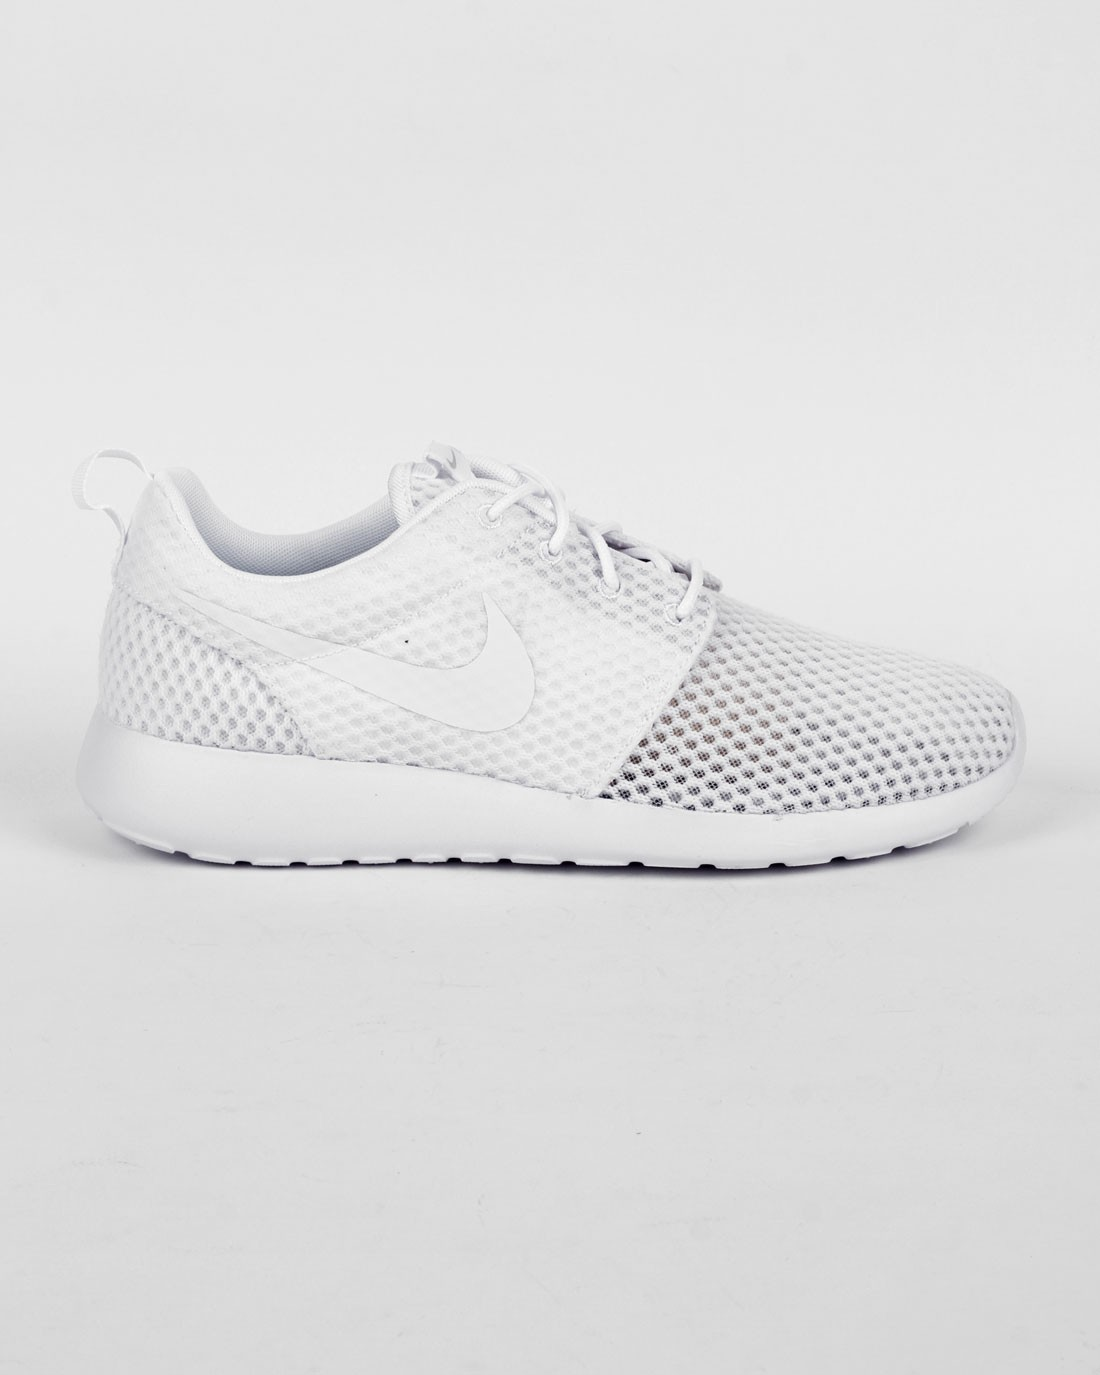 Pack Achat BrbreezeMonochrome Chaussures One Homme Nike Roshe De OPiukXZT